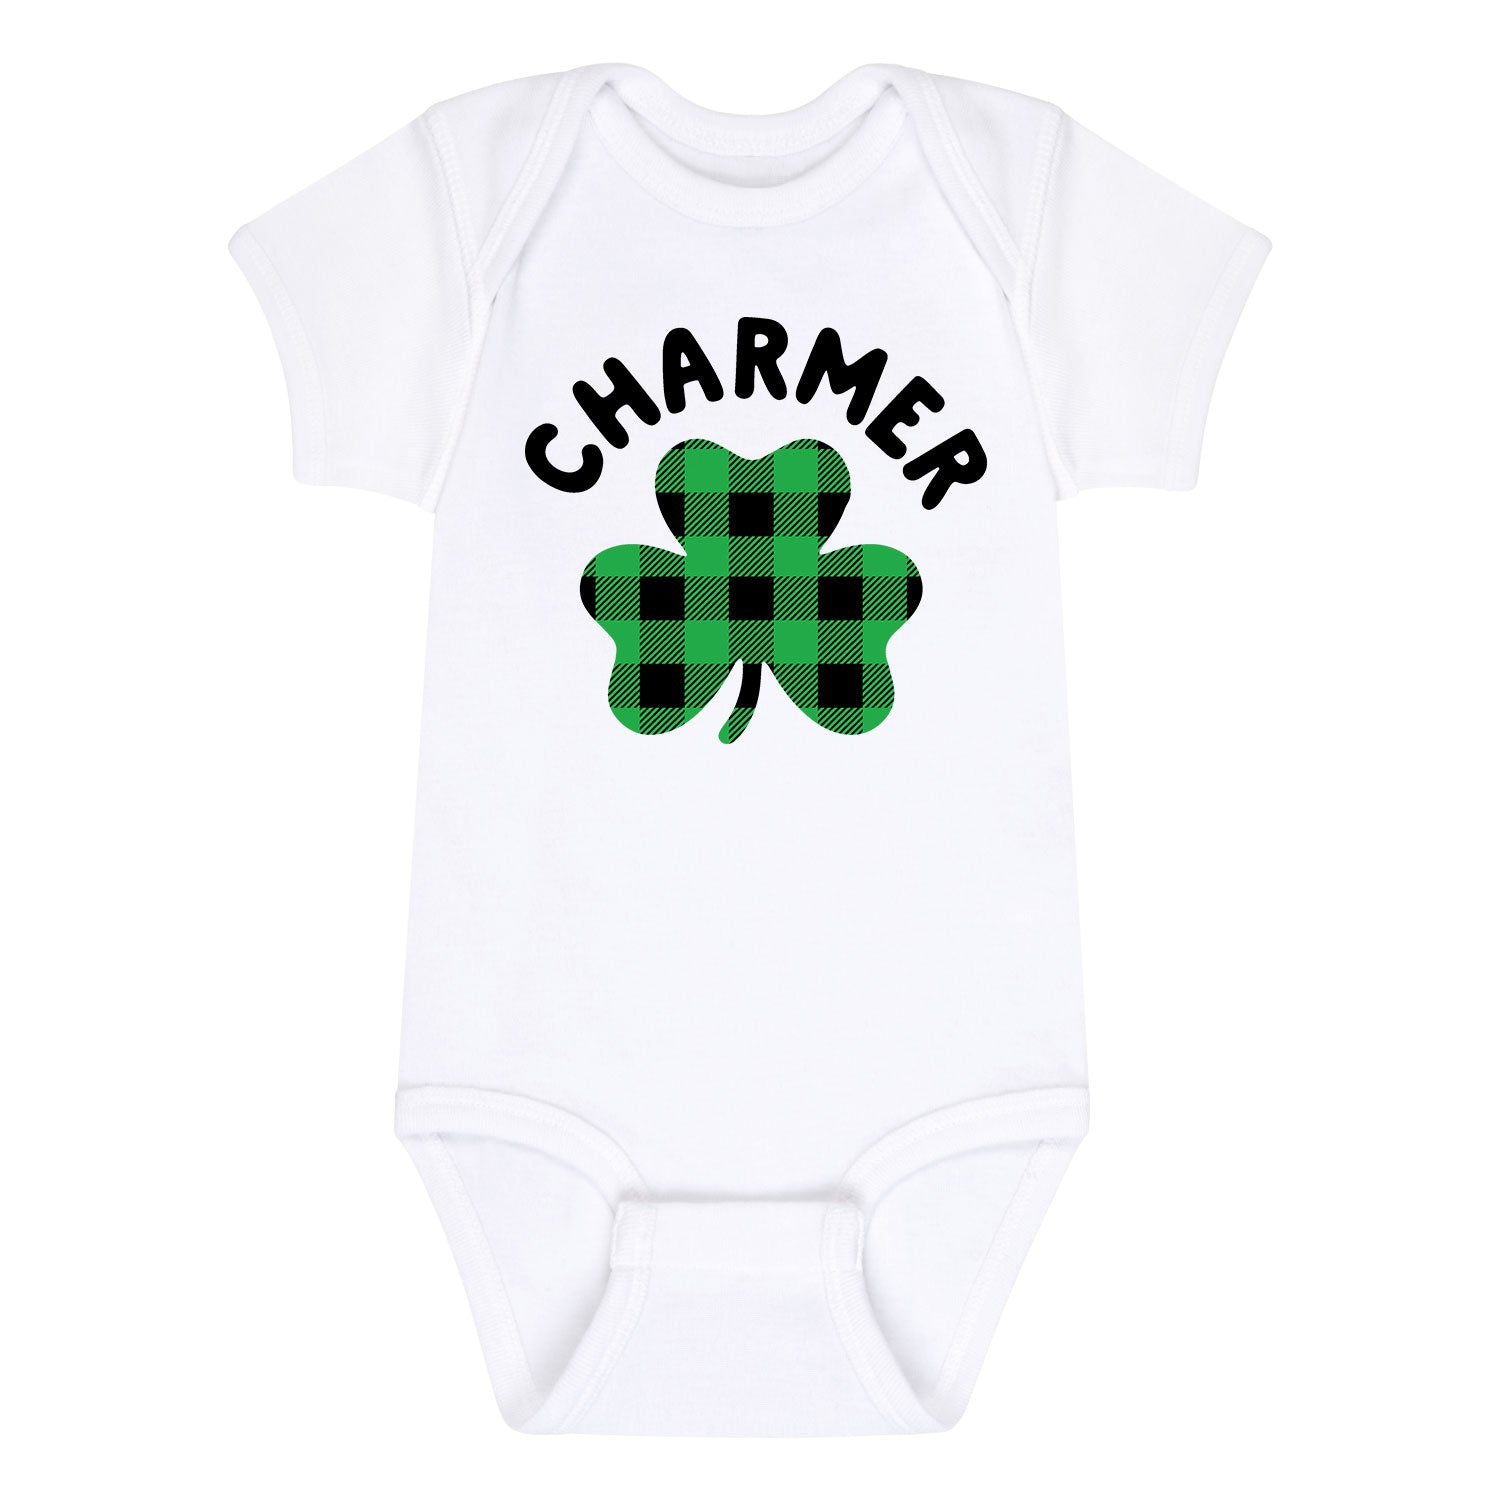 Charmer - Infant One Piece